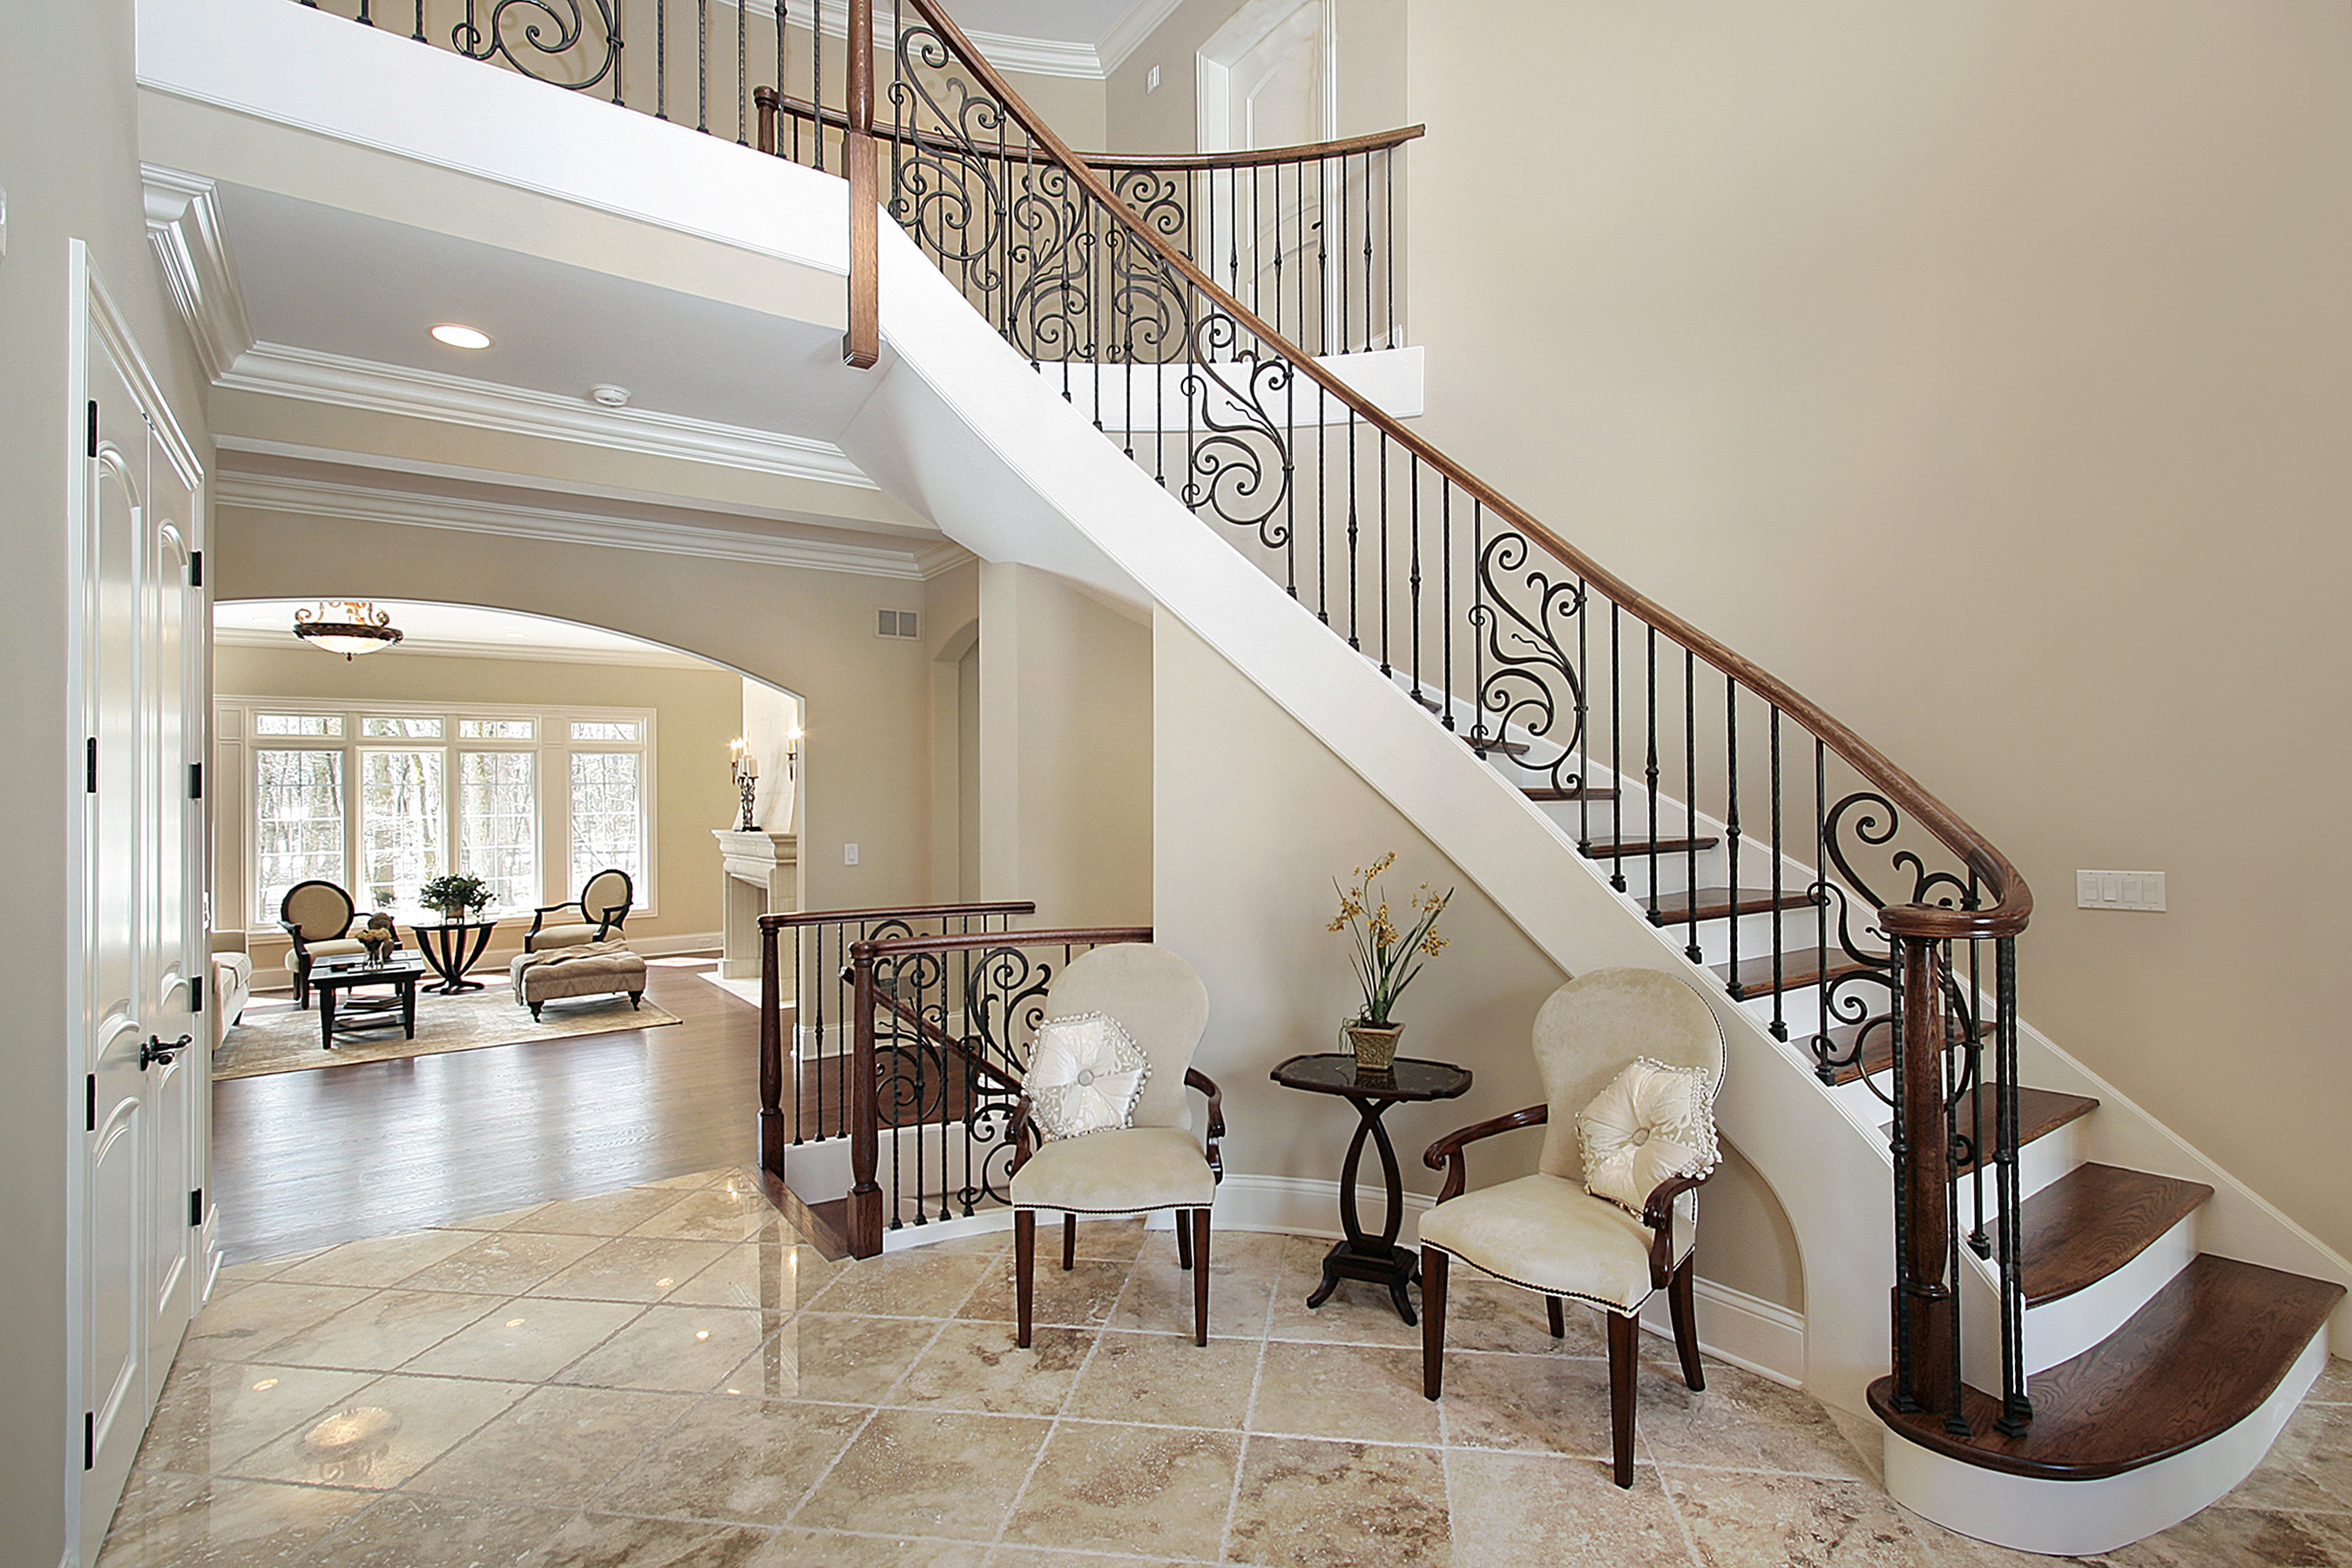 bigstock-Foyer-With-Curved-Staircase-5268783